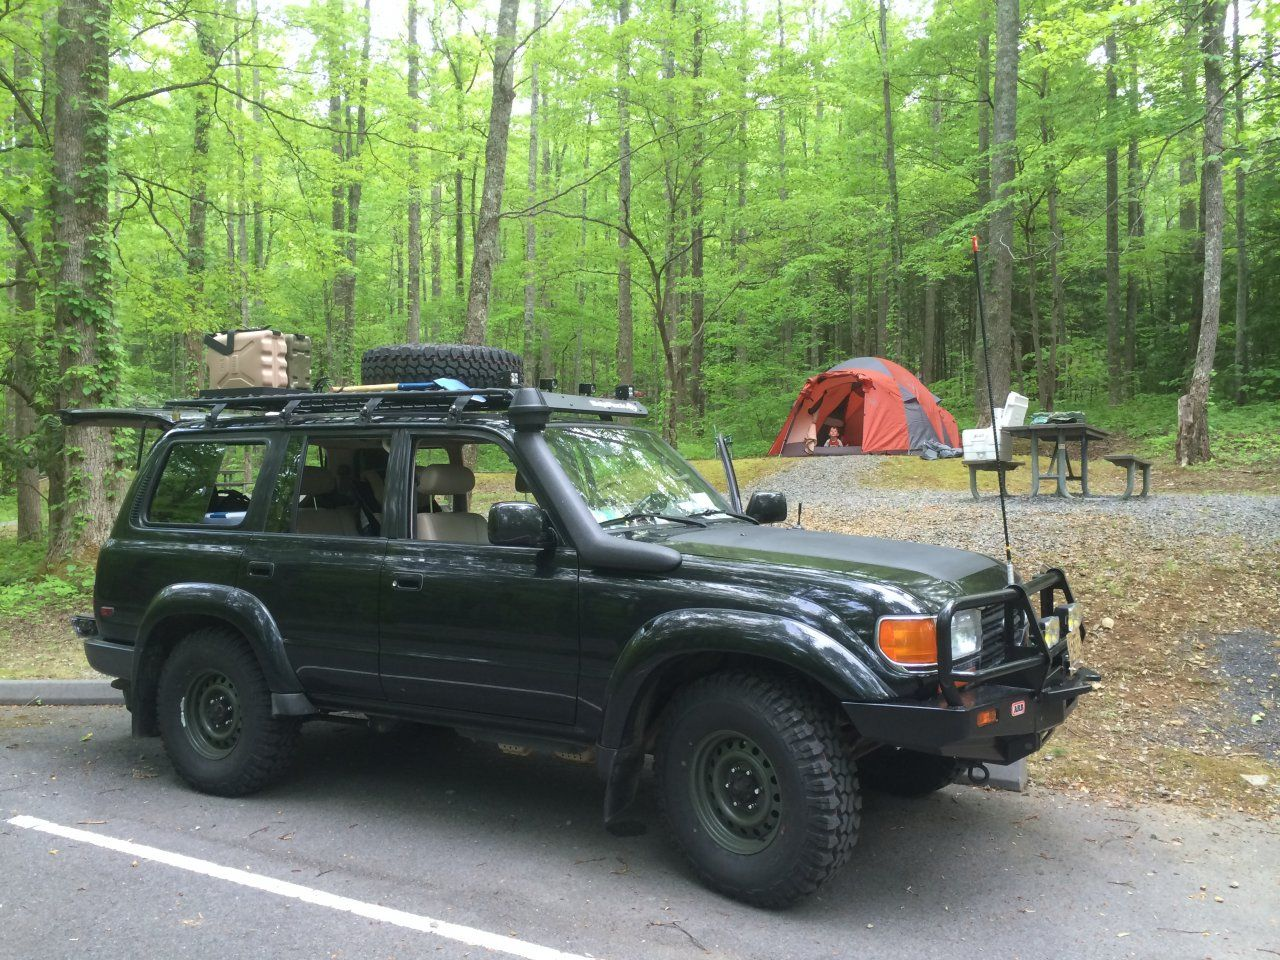 Official 35 And Under Post Pictures Land Cruiser Toyota Cars Offroad